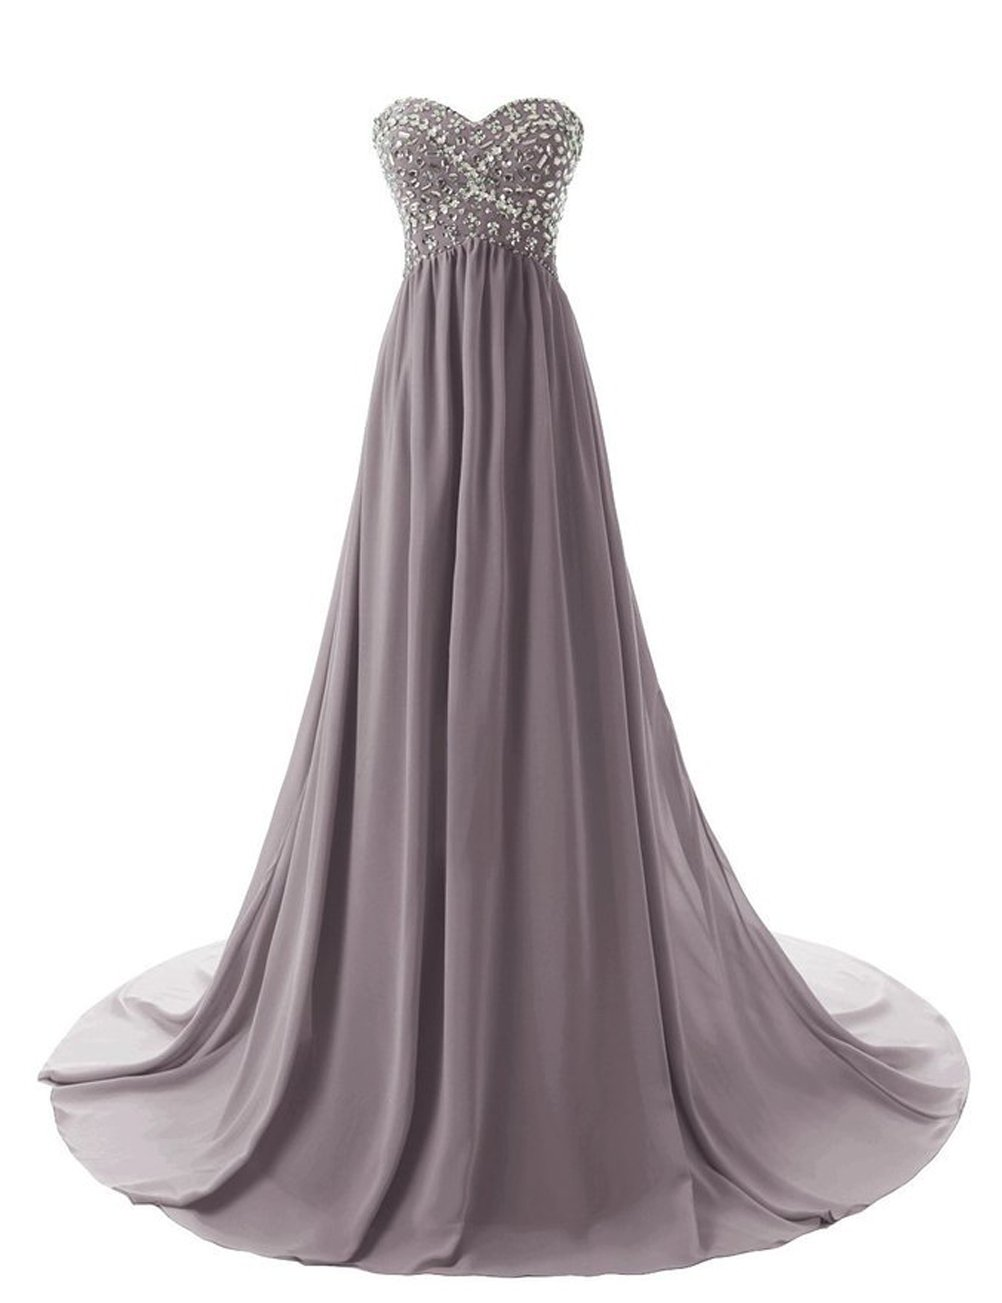 Uryouthstyle Strapless Beaded Chiffon High Low Long Sweetheart Maternity Dress